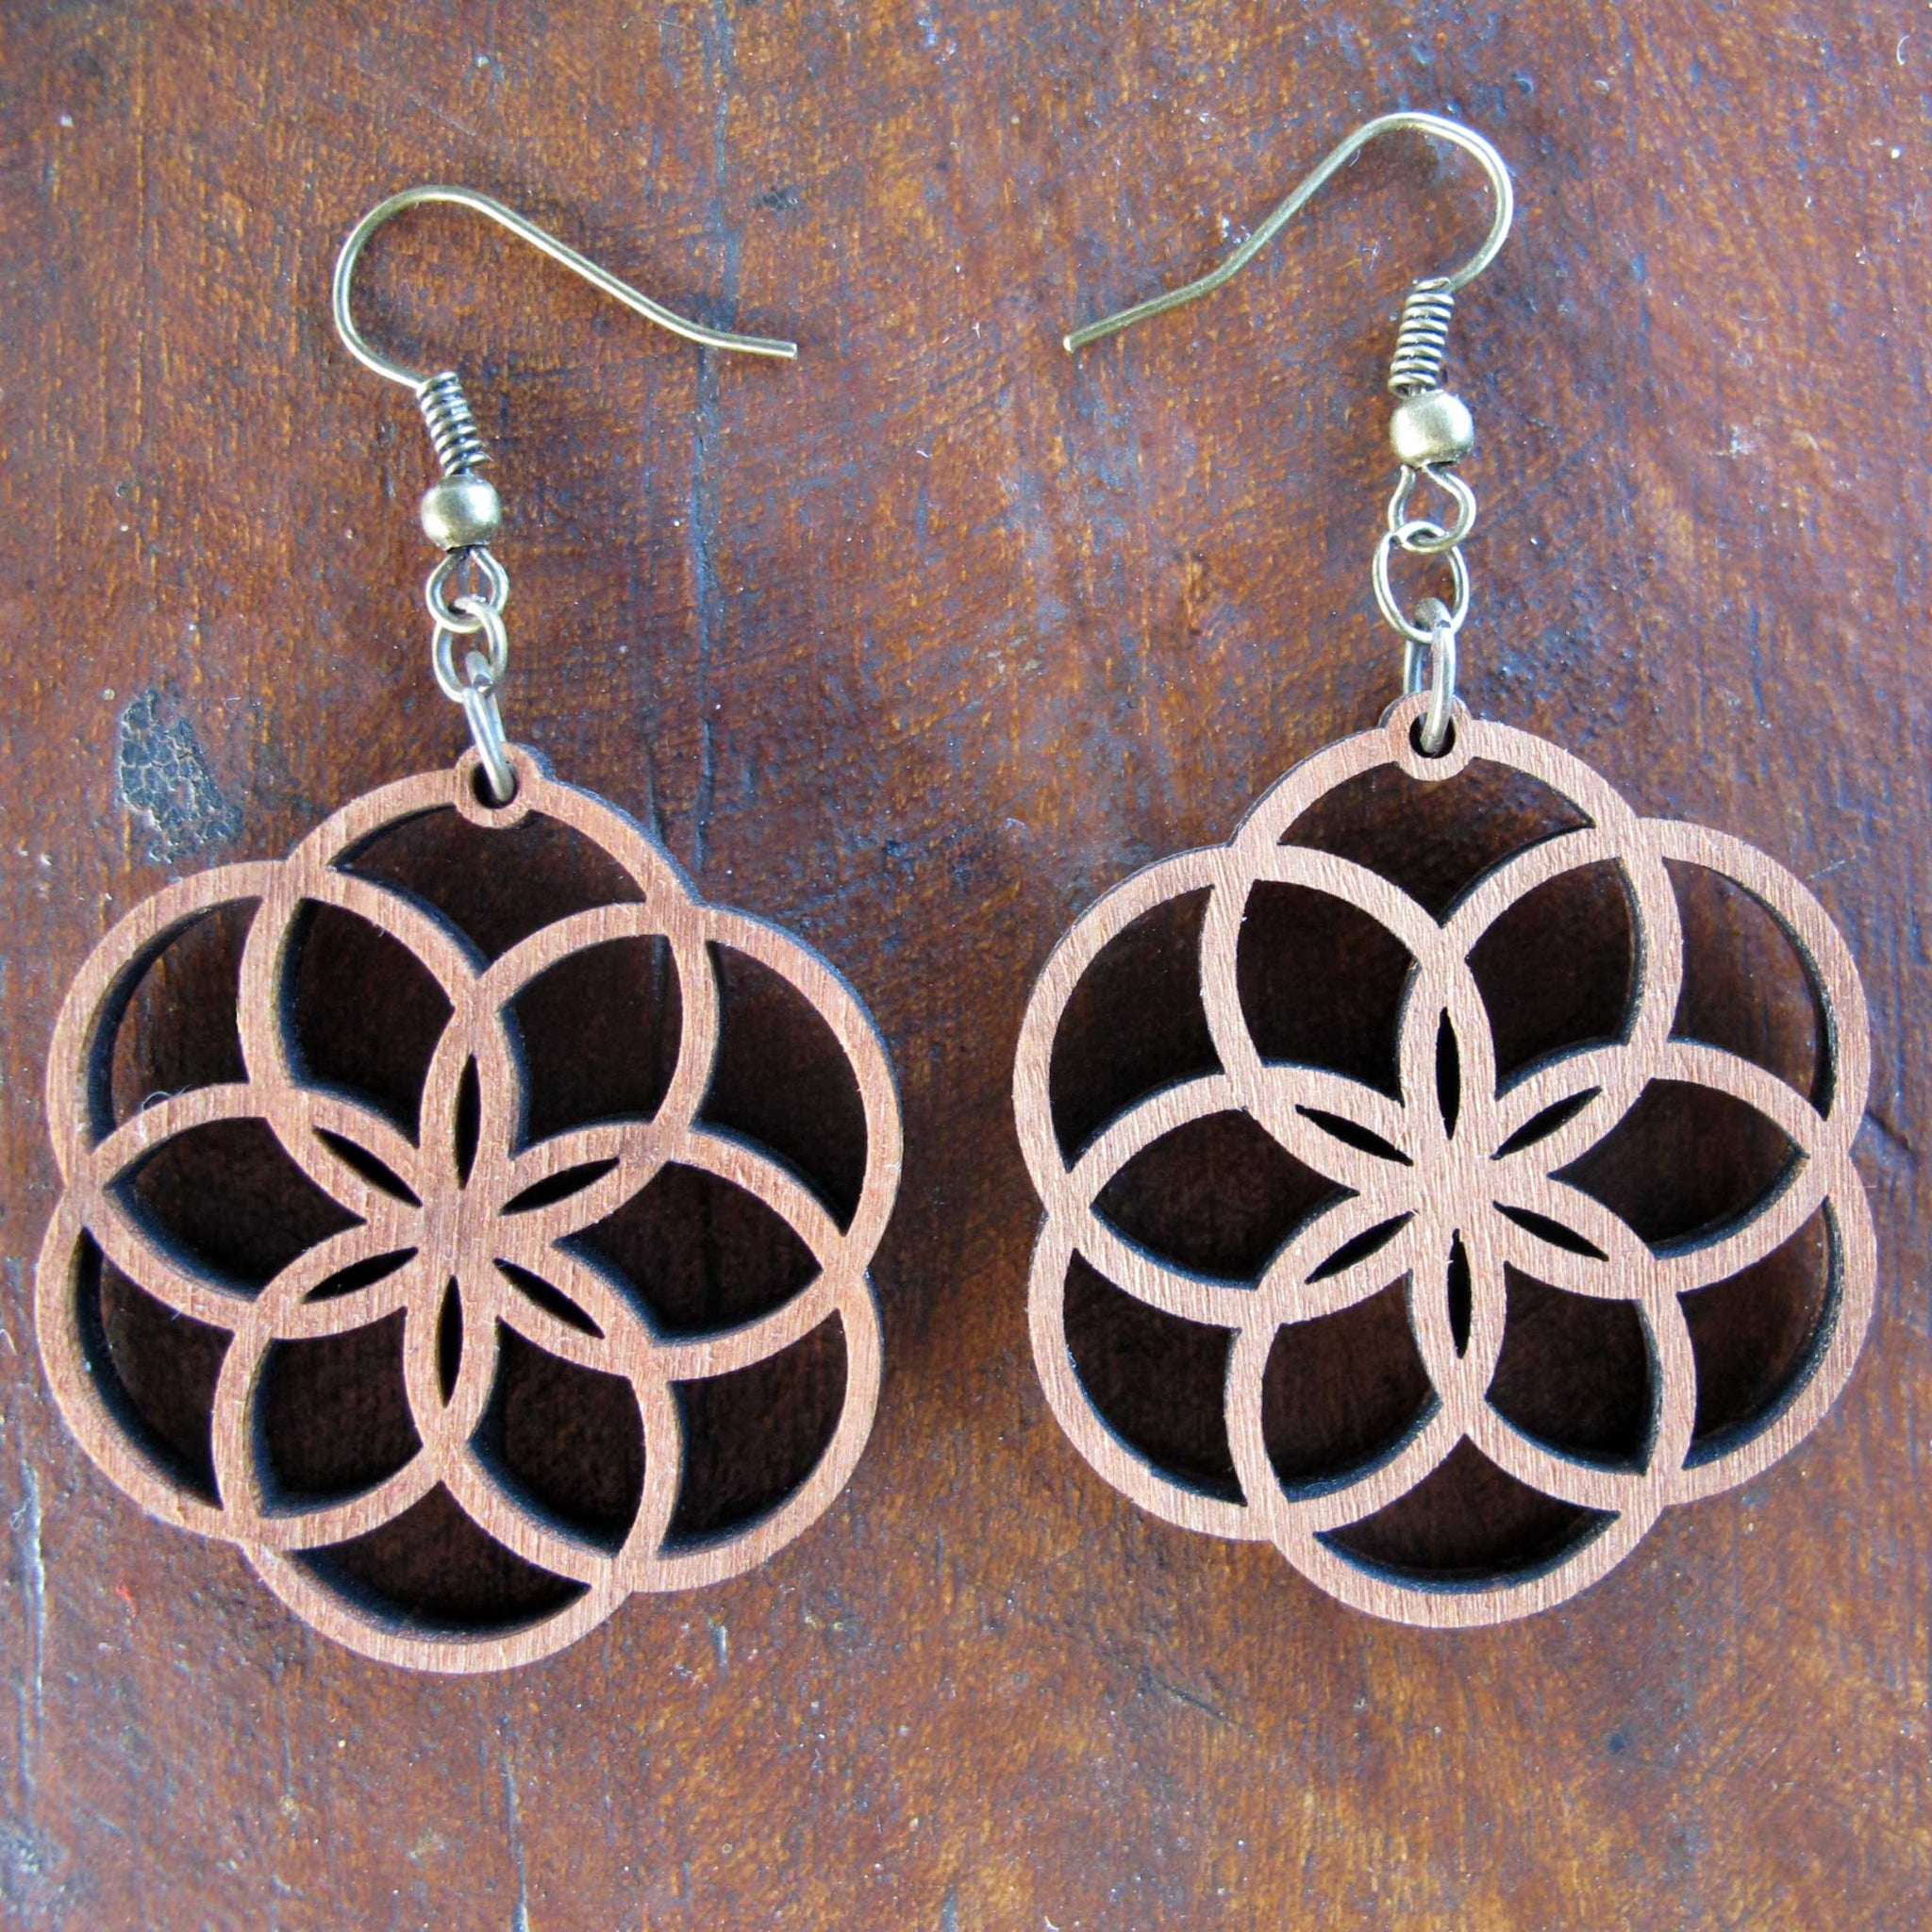 1cb096a210 ... Wooden Earrings